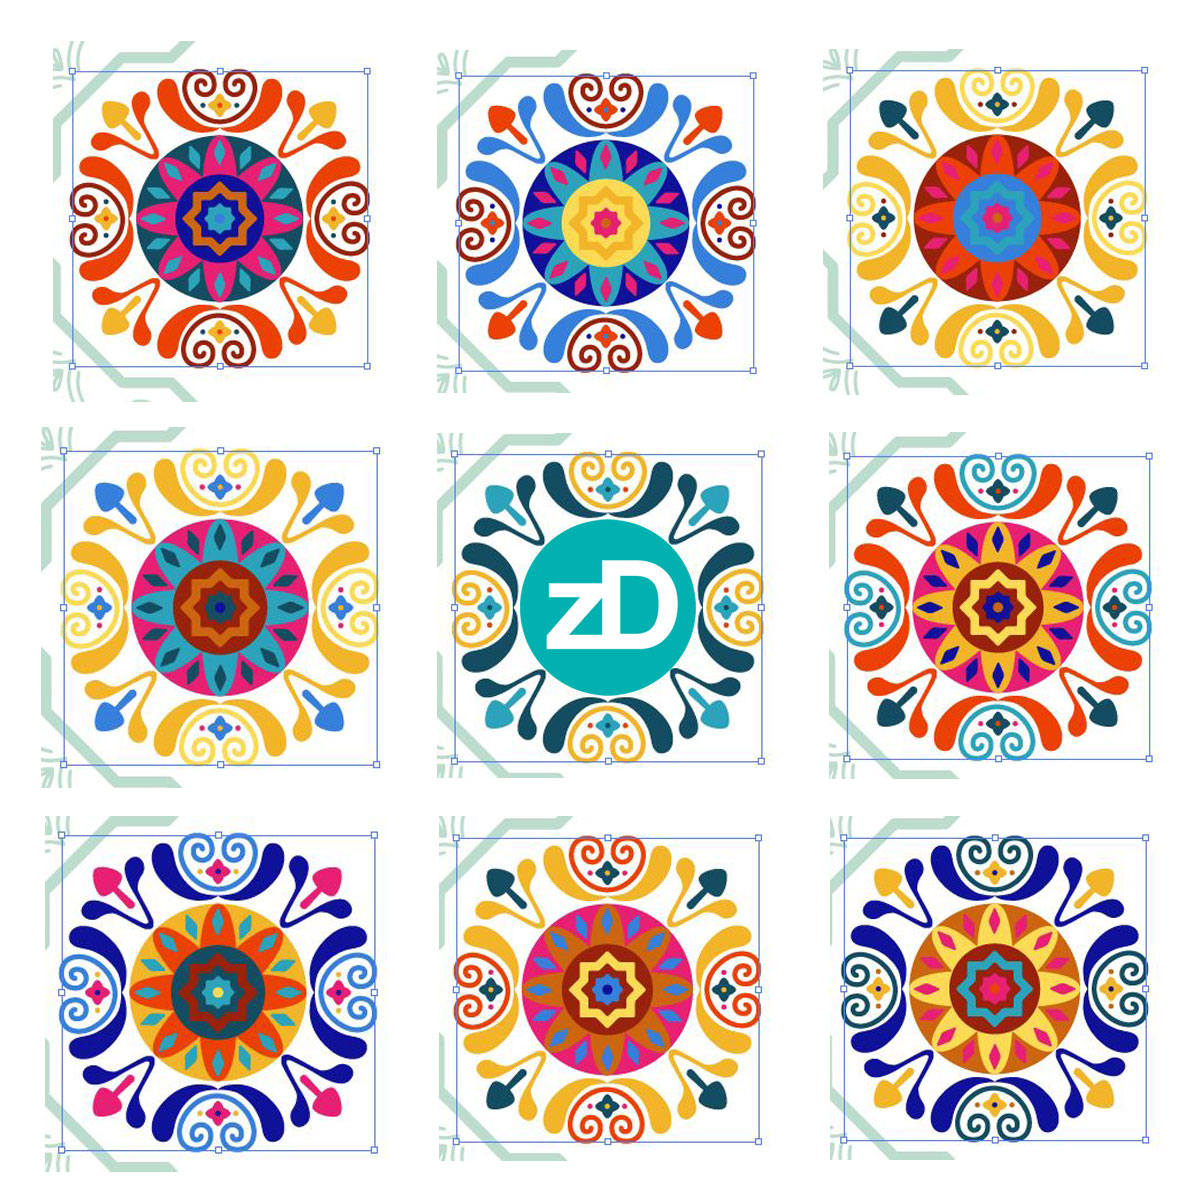 Zirkus Design | Cheery Modern Moorish Tiles Fabric Design - Recoloring my Artwork